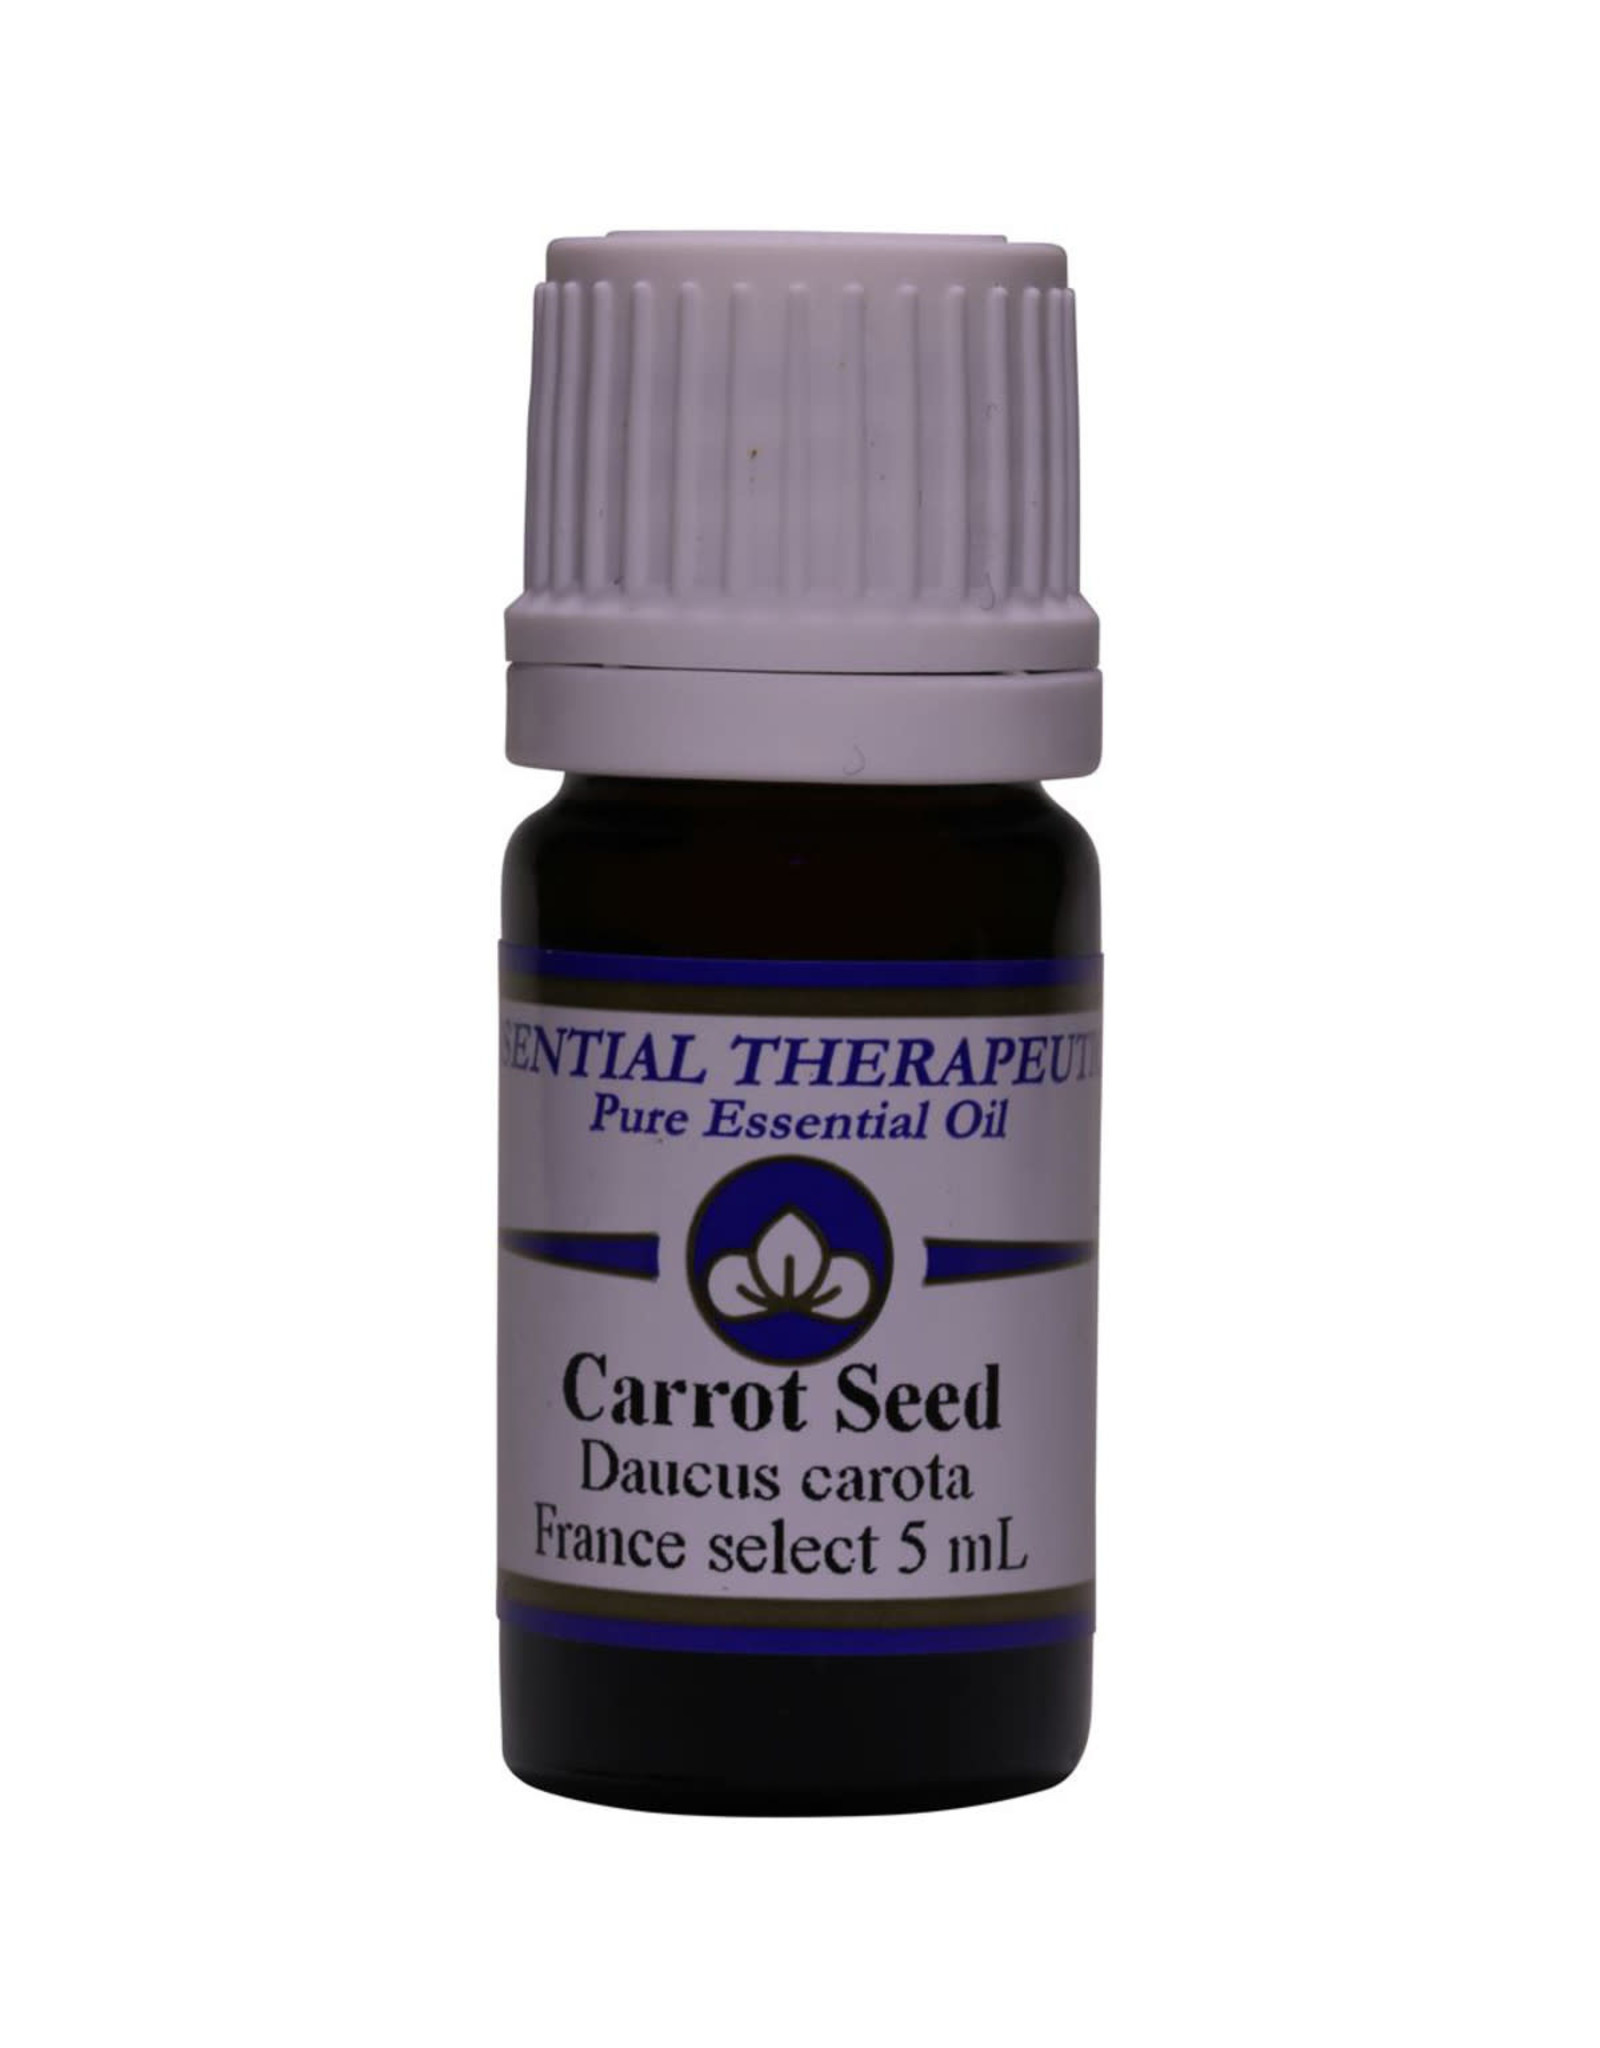 Essential Therapeutics Carrot Seed Oil 5ml